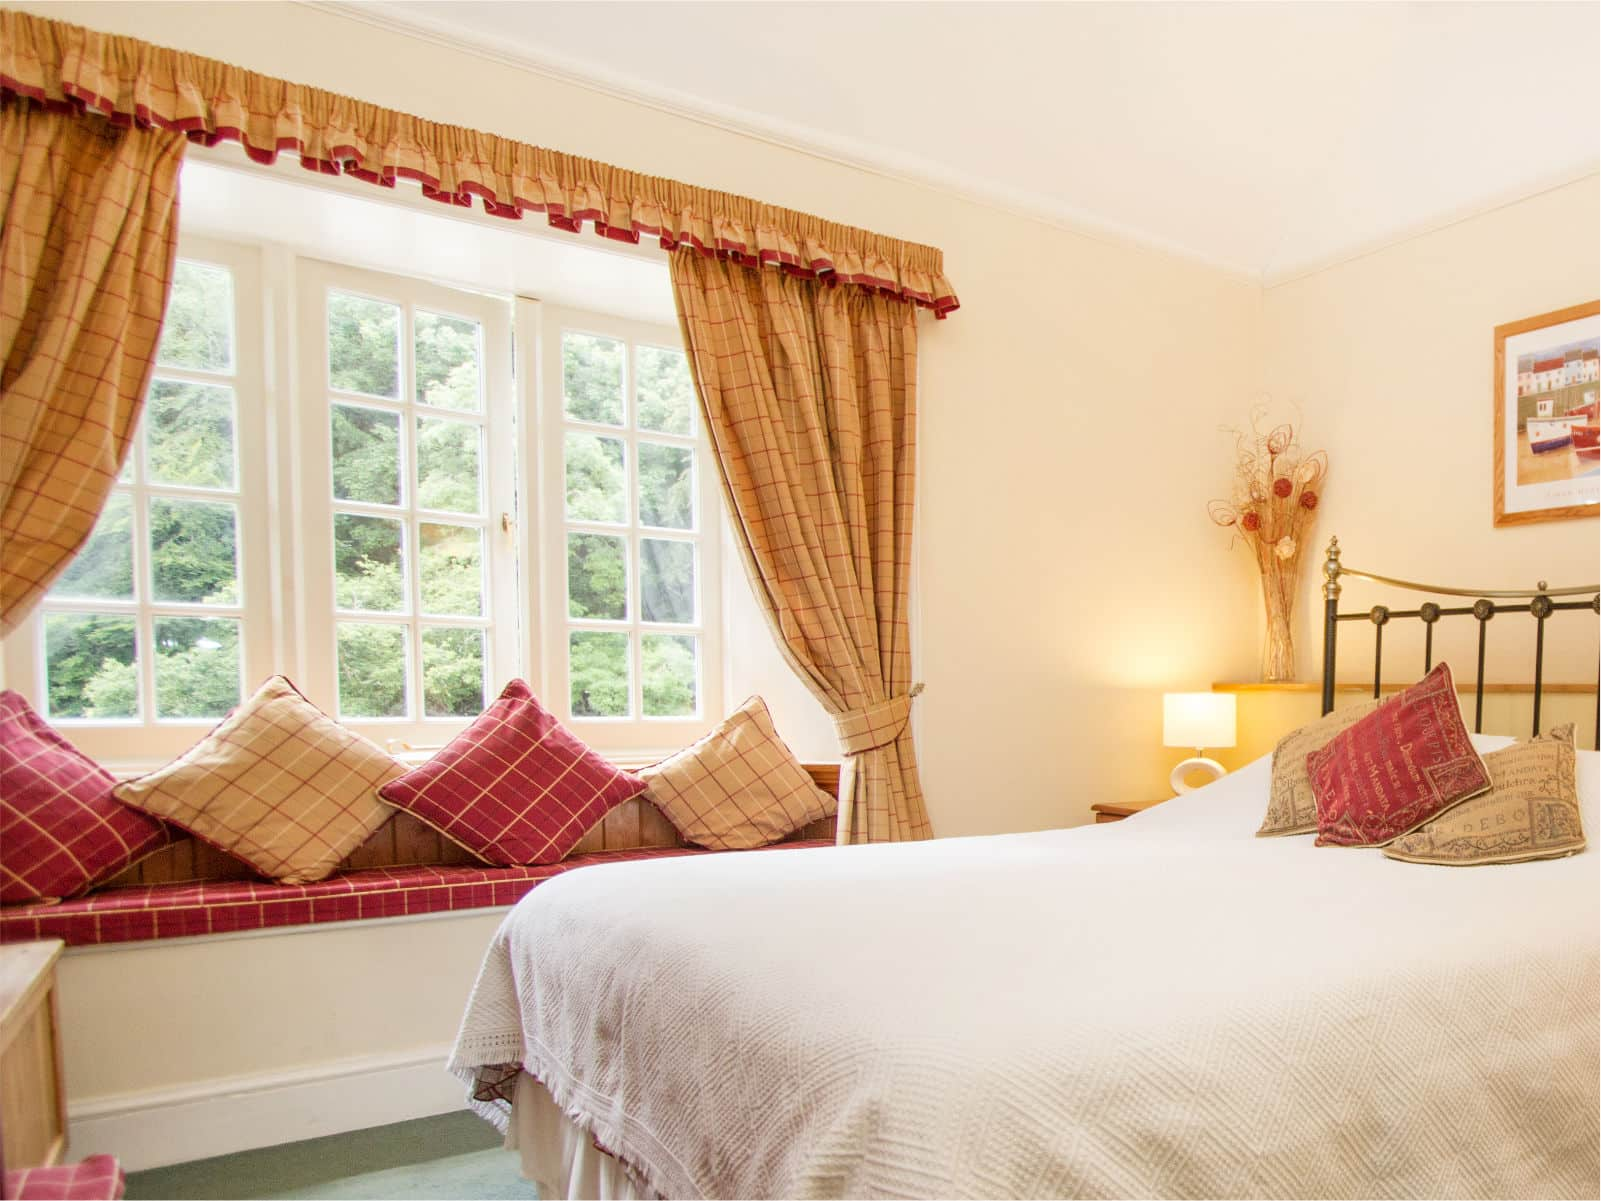 Kingfisher Bedroom at Polraen Country House